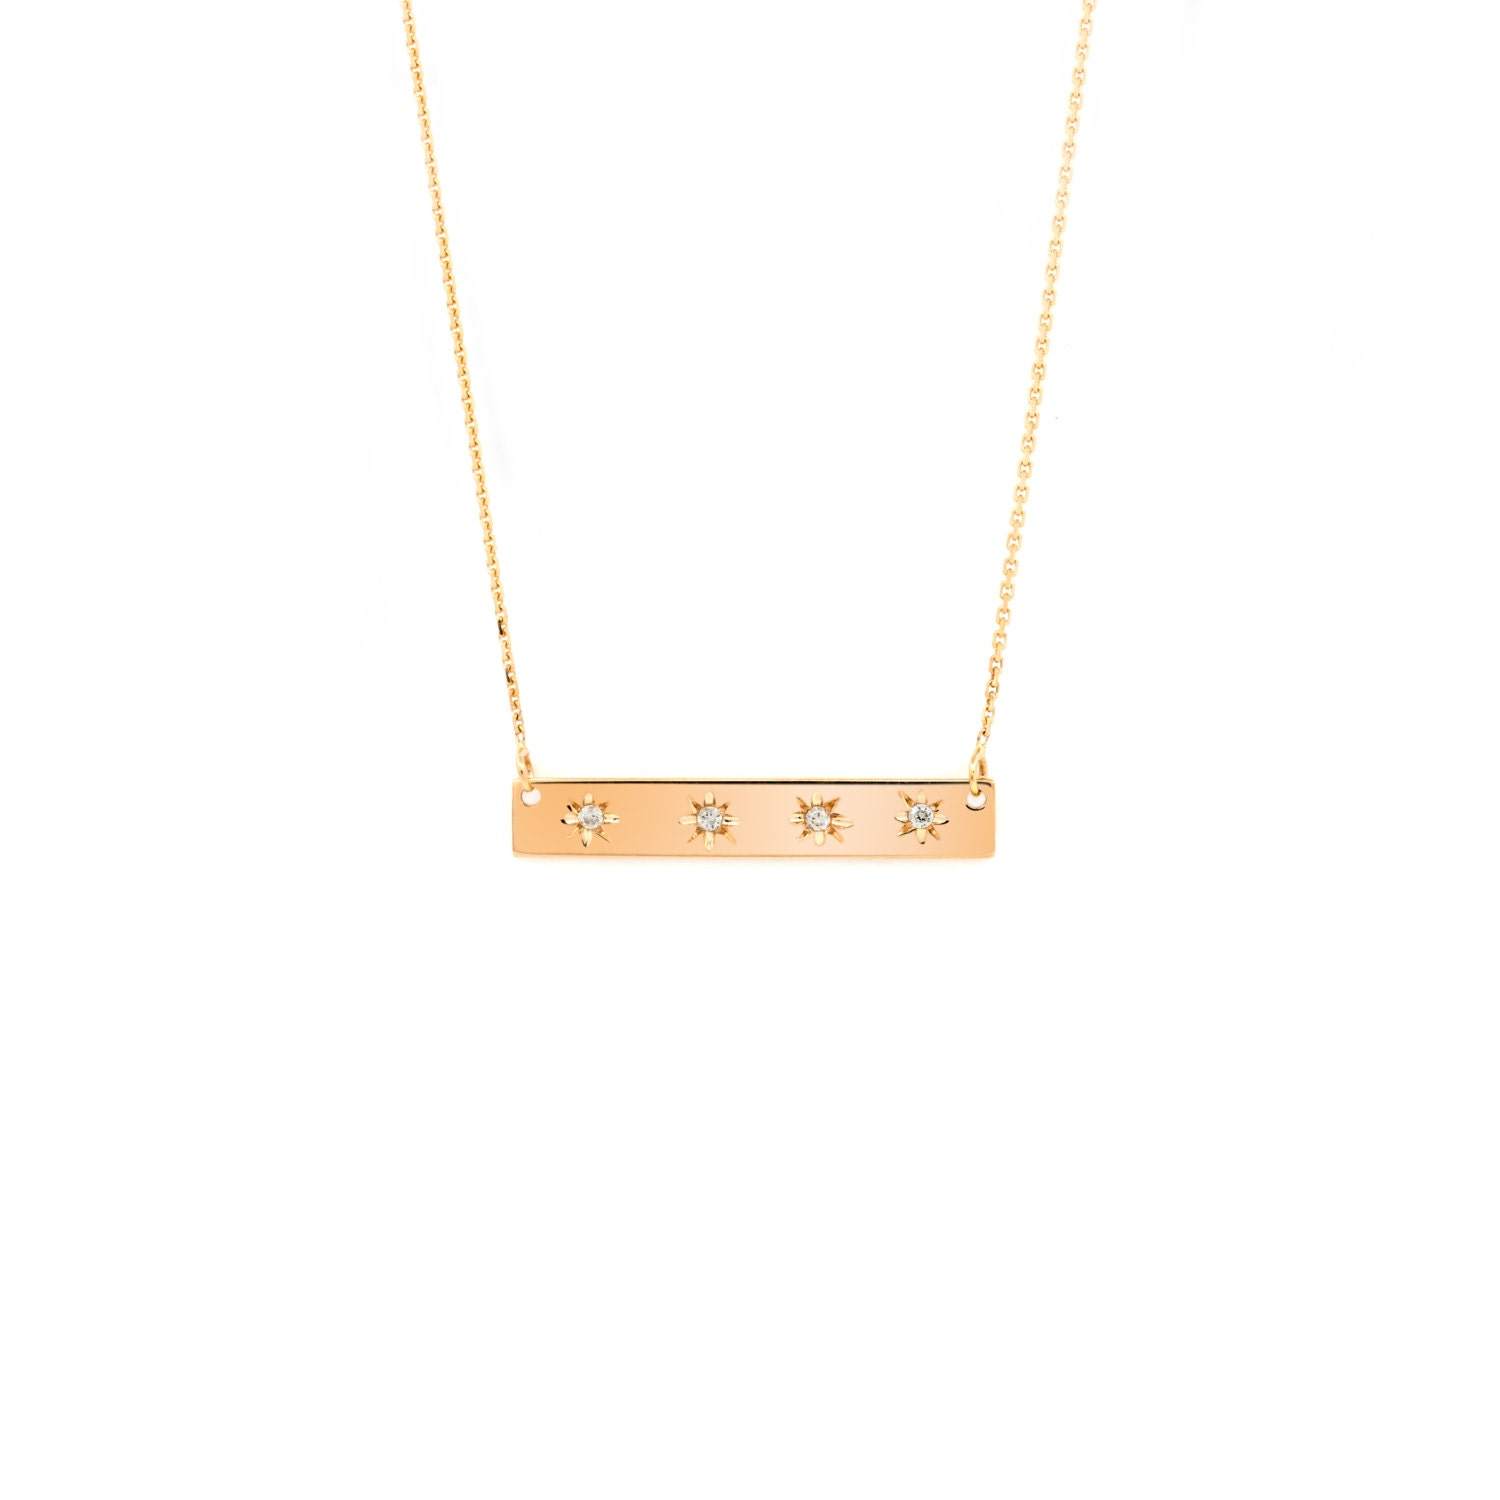 necklace gold necklace 14 karat gold bar necklace